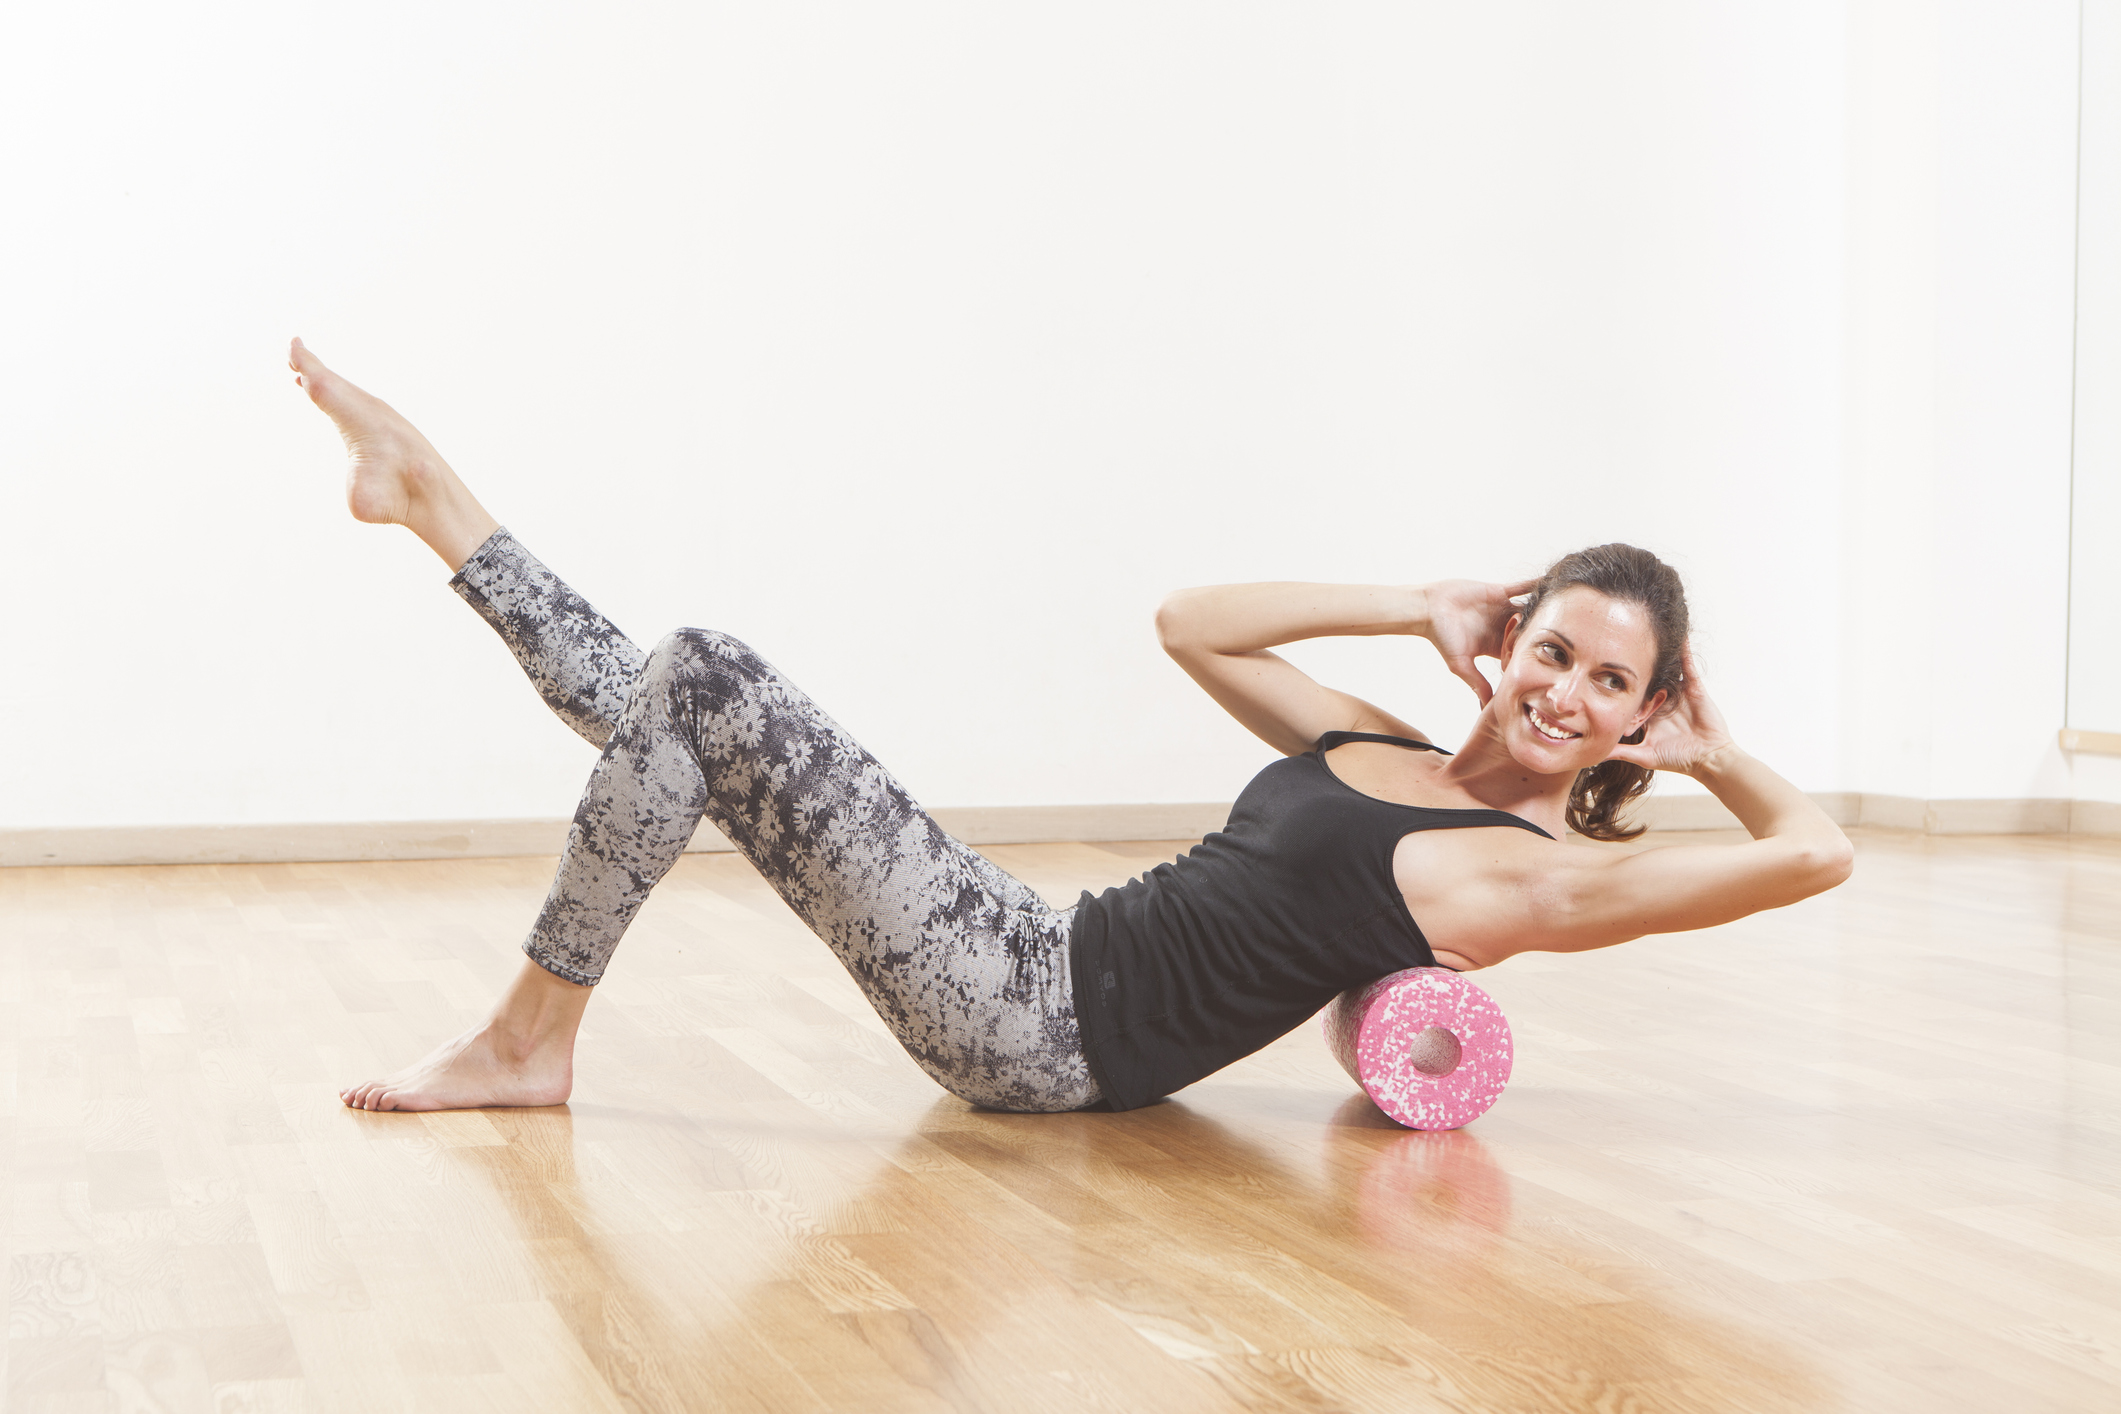 Beautiful woman pilates instructor stretching and warming up using foam roller